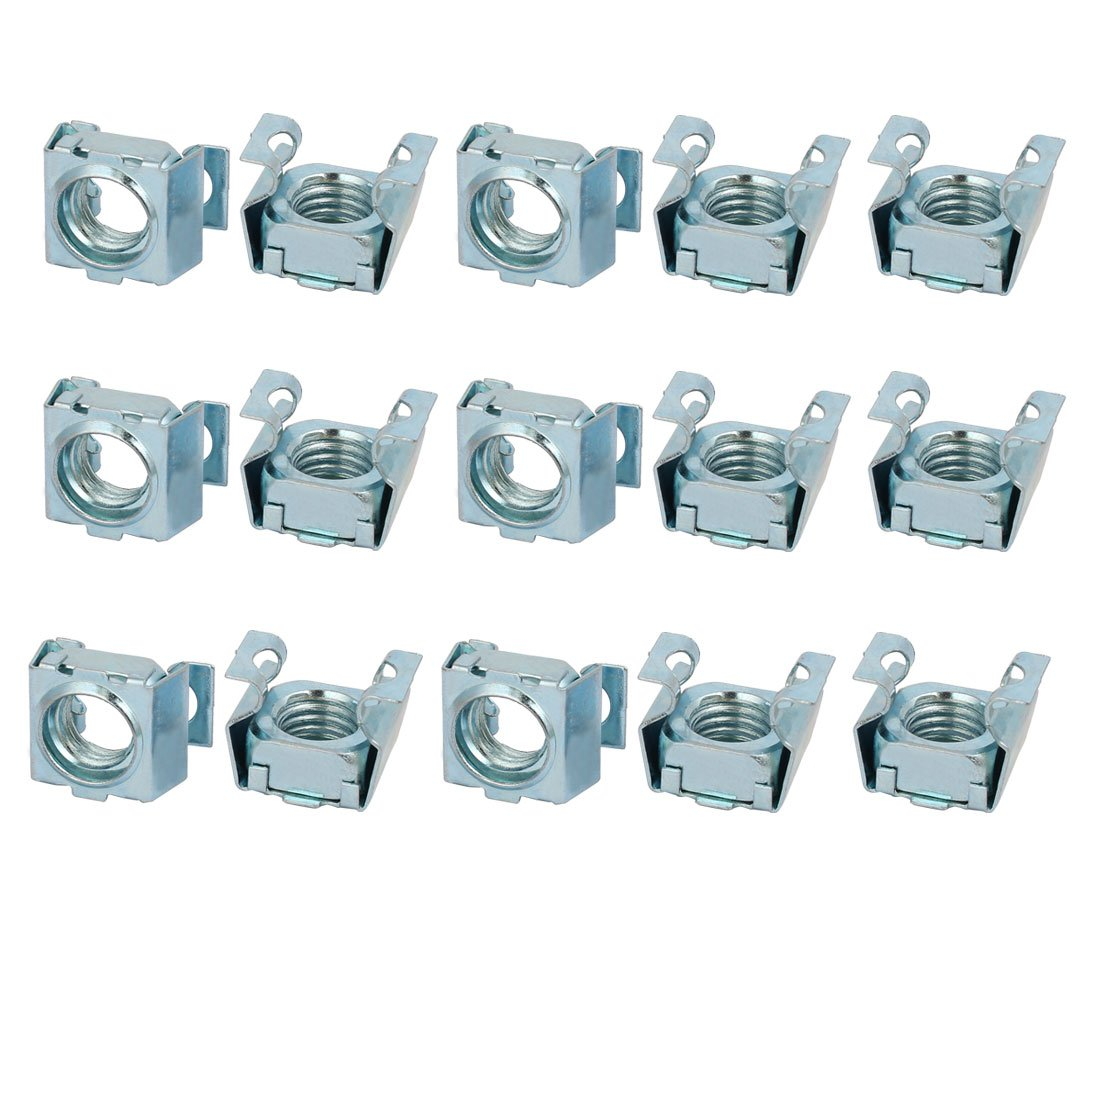 sourcingmap® 15pcs M12 Carbon Steel Captive Cage Nut Silver Tone for Server Shelf Cabinet a17092500ux0028